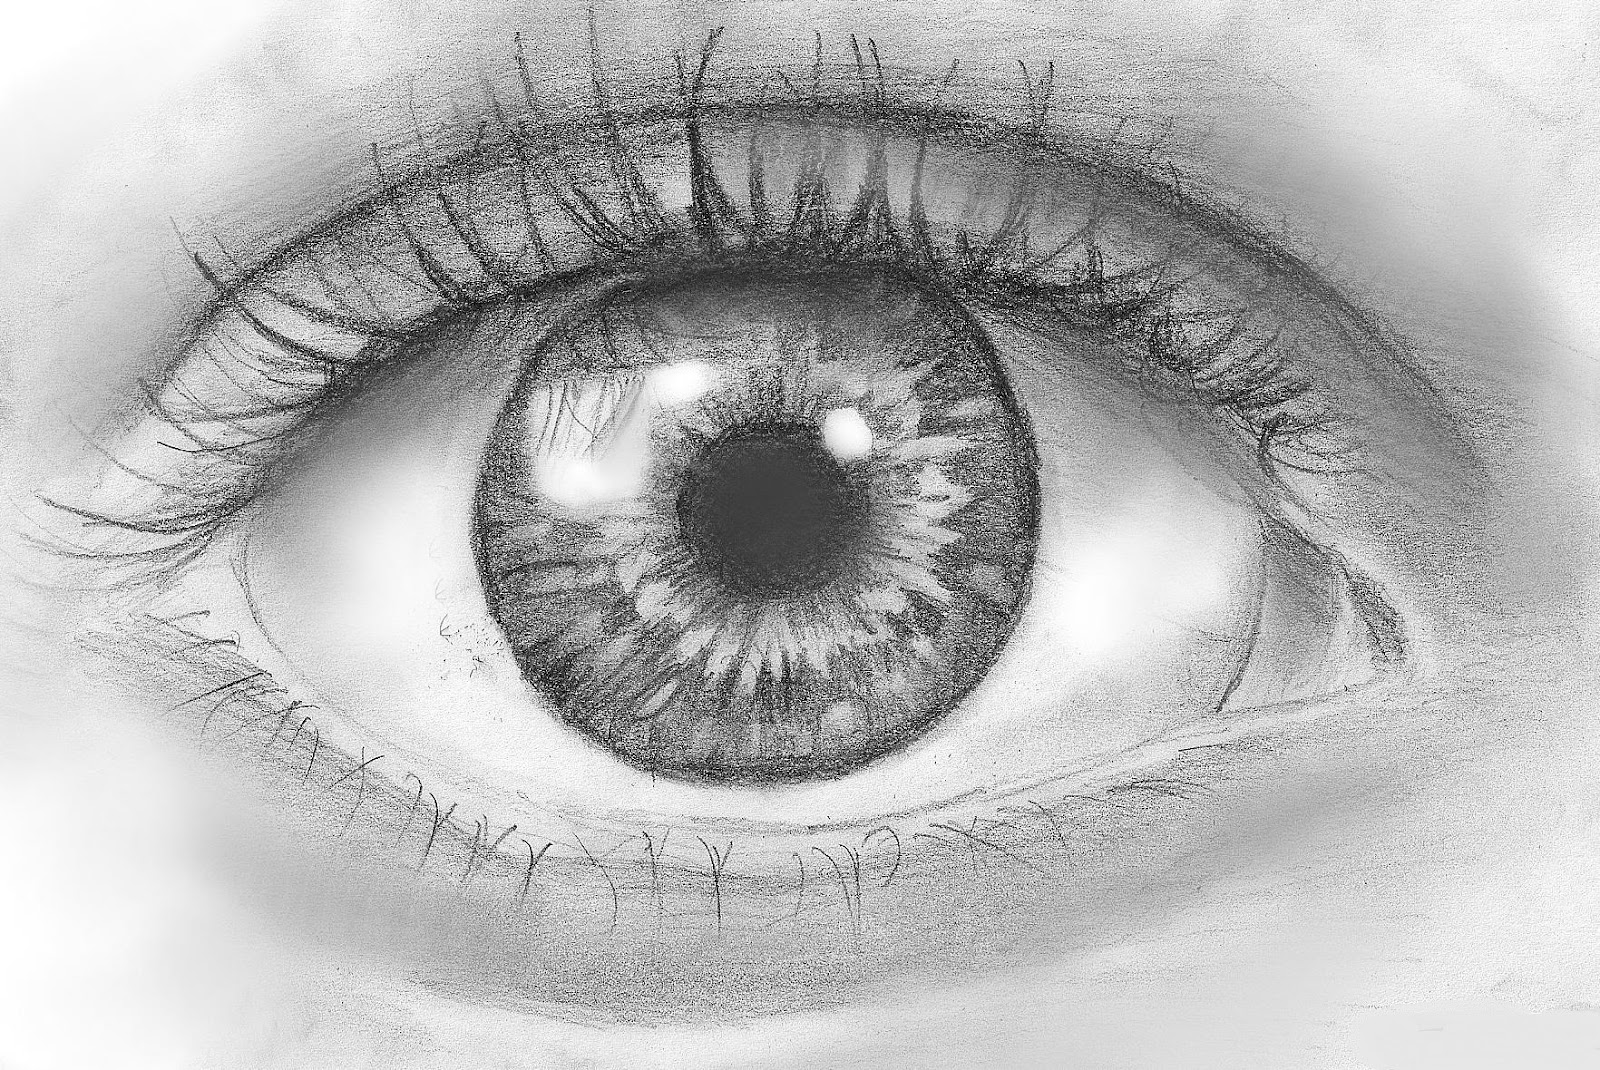 how to draw: How to Draw an Eye in Pencil